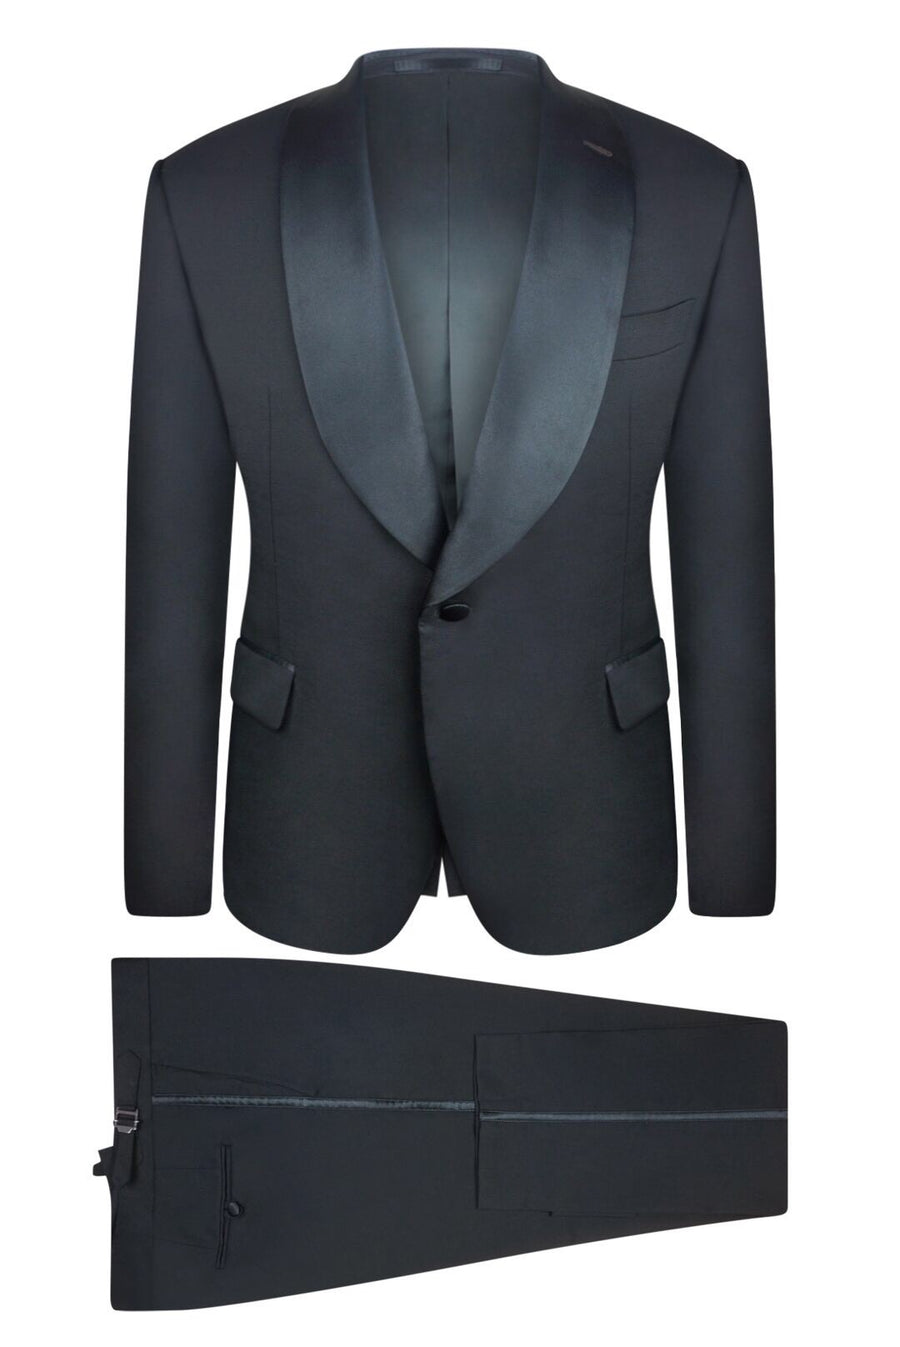 Midnight Black Slim Fit Tuxedo Pant